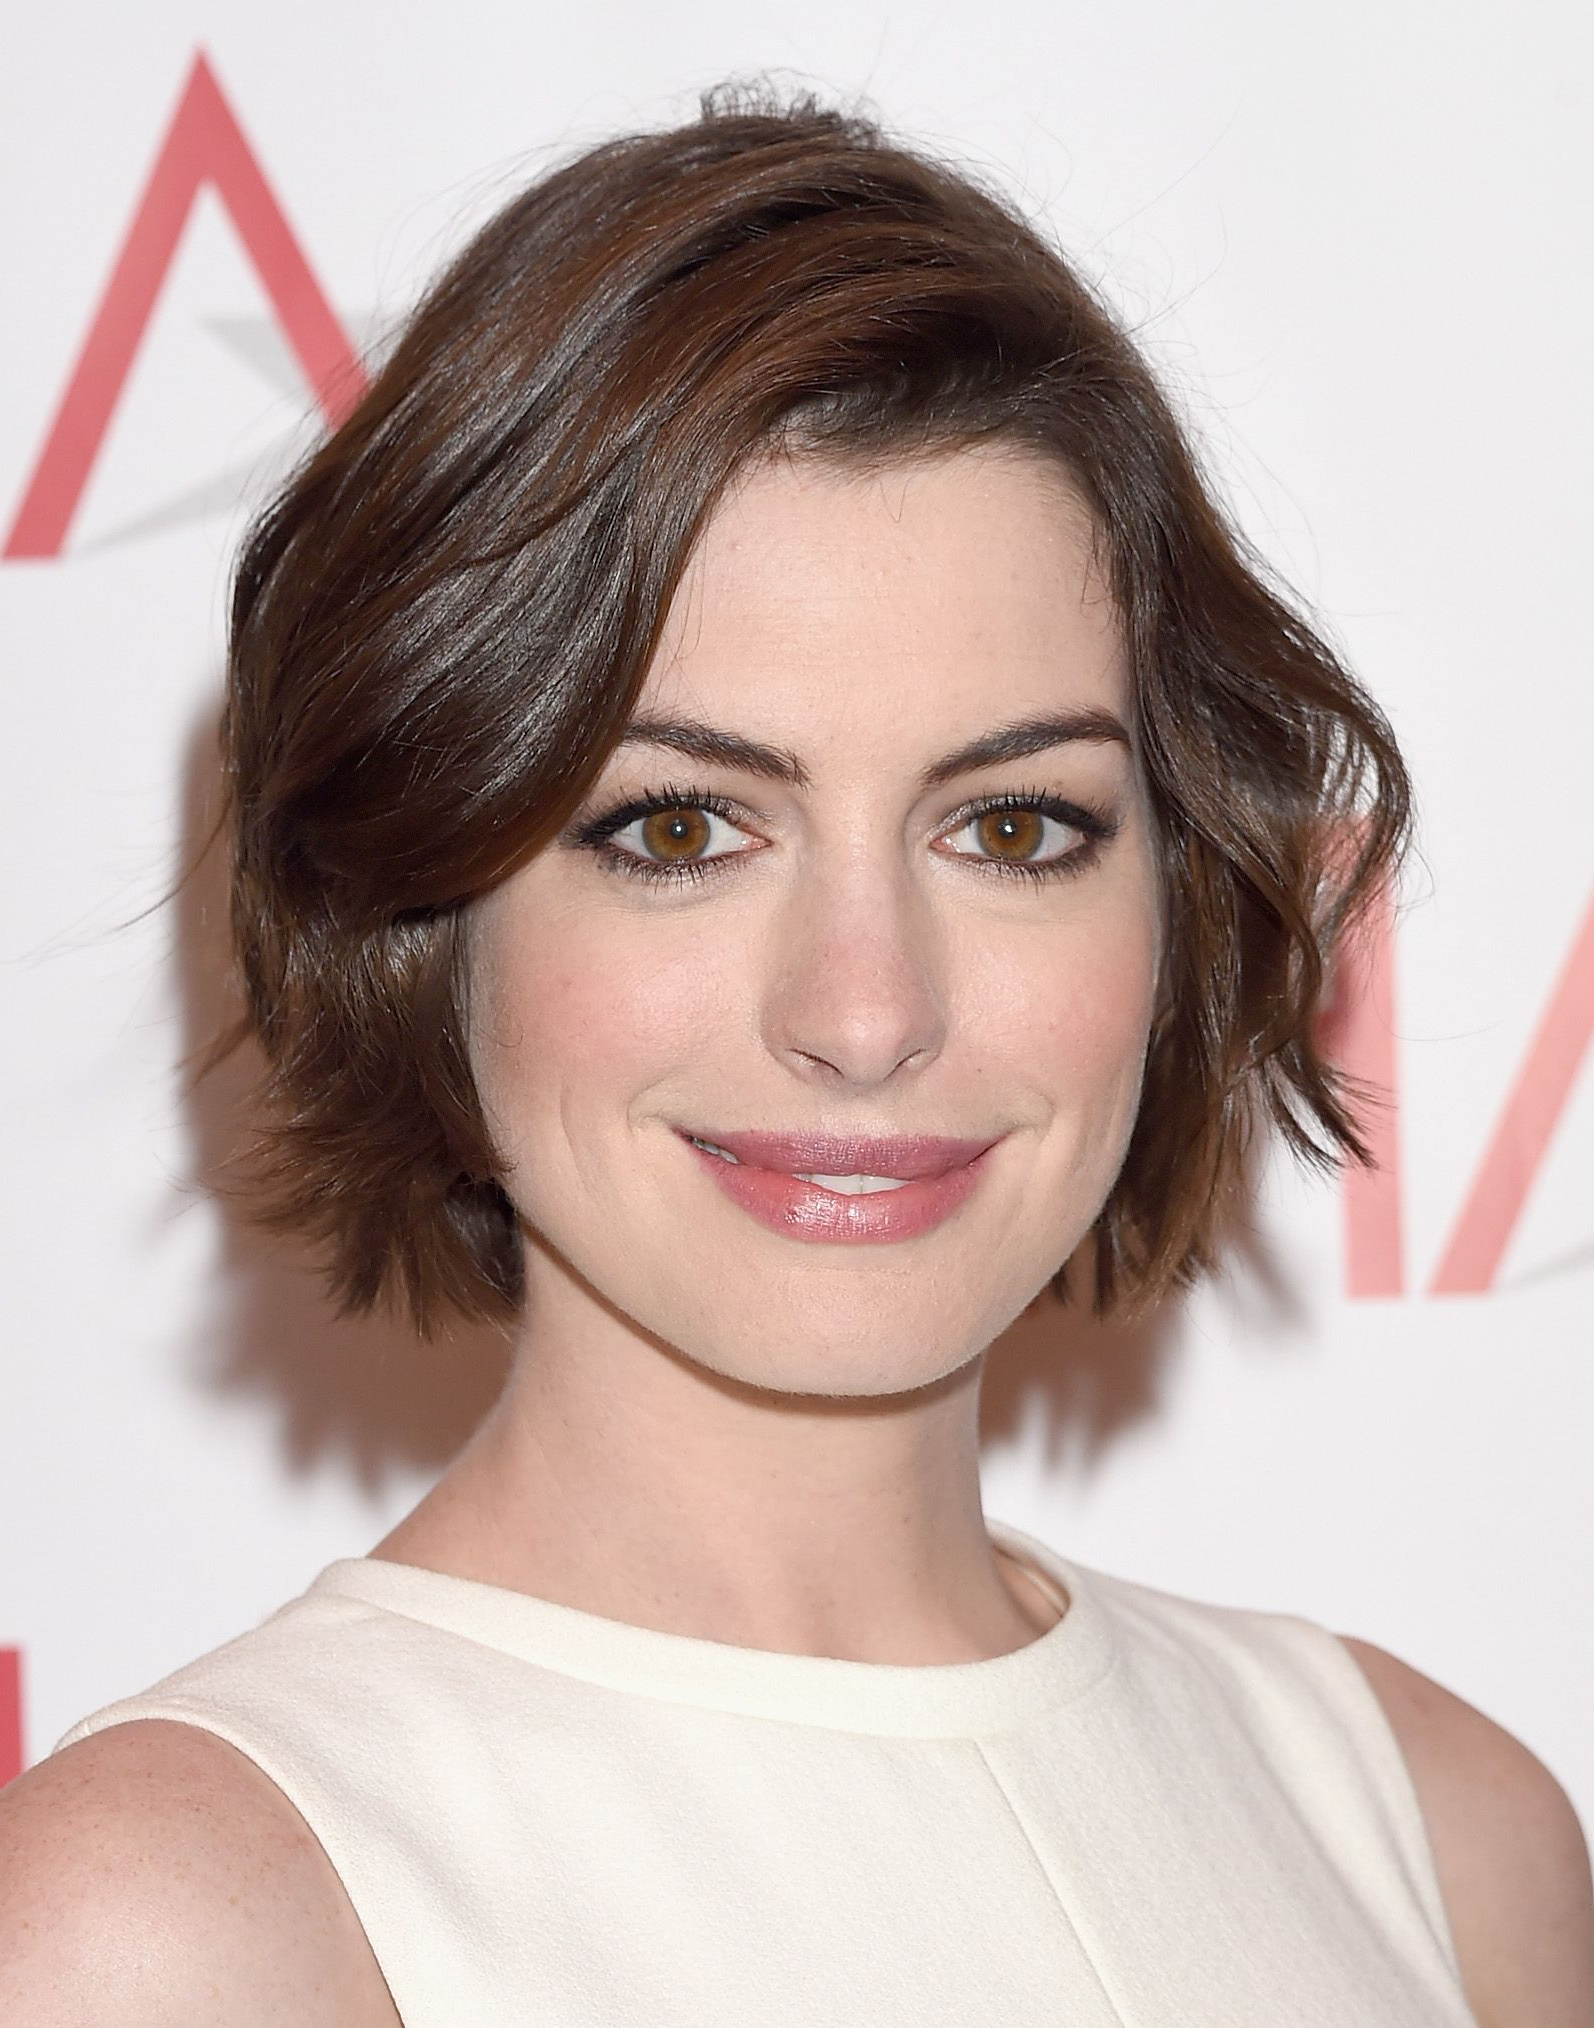 24 Best Haircuts For Women Over 30 – Short Hairstyle Ideas Pertaining To Cute Shaped Crop Hairstyles (View 7 of 20)